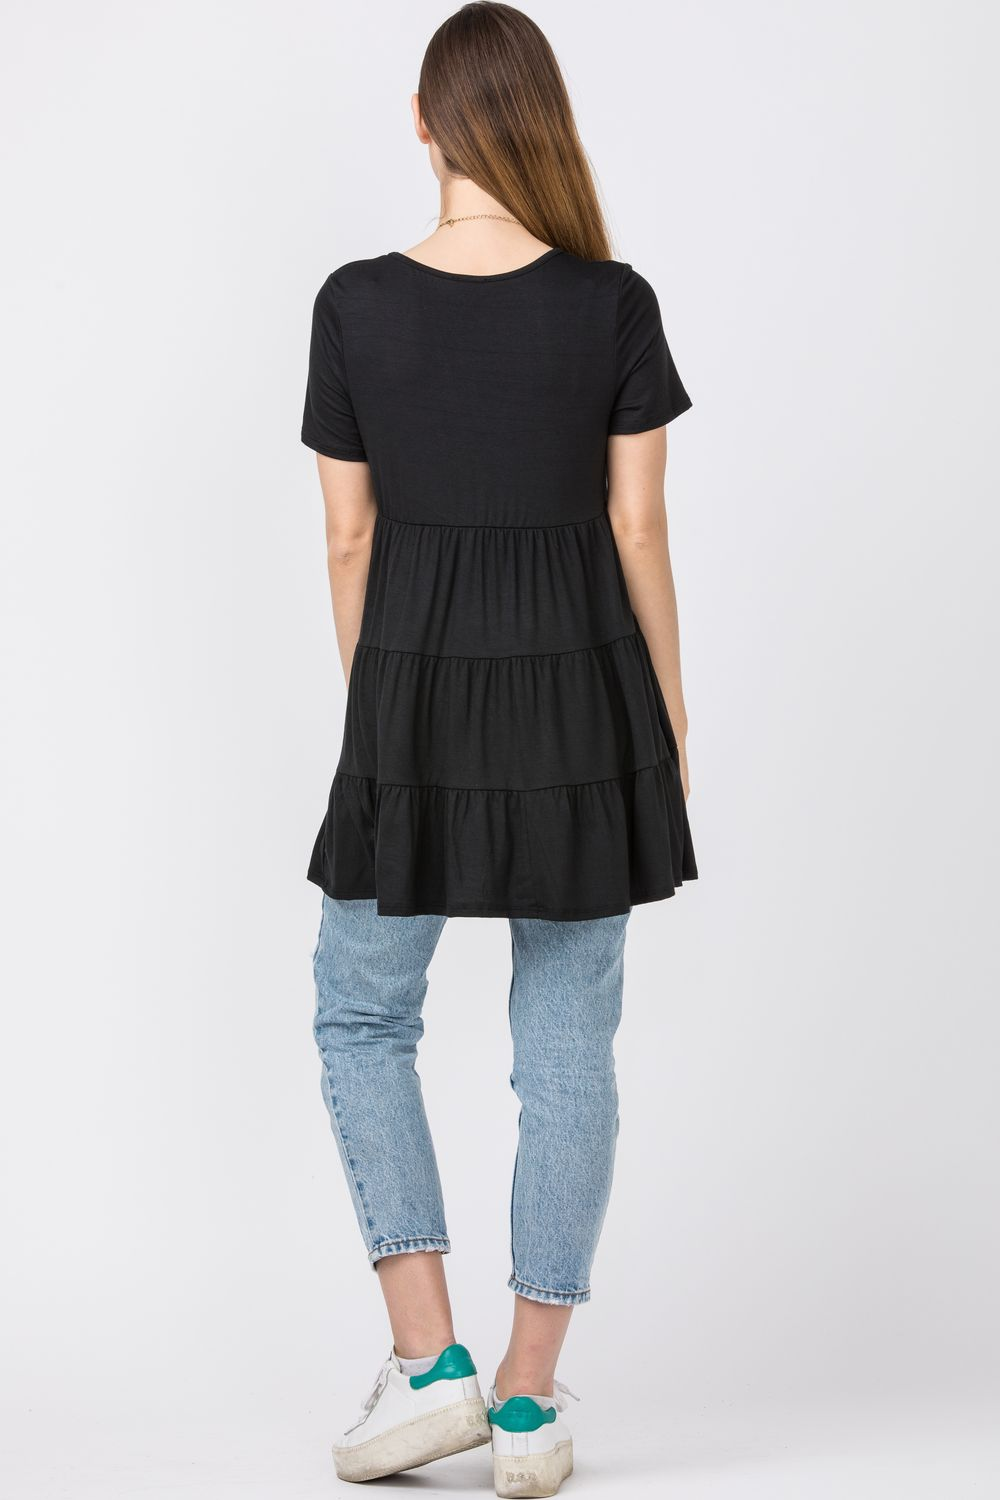 Black Short Sleeve Tiered Tunic